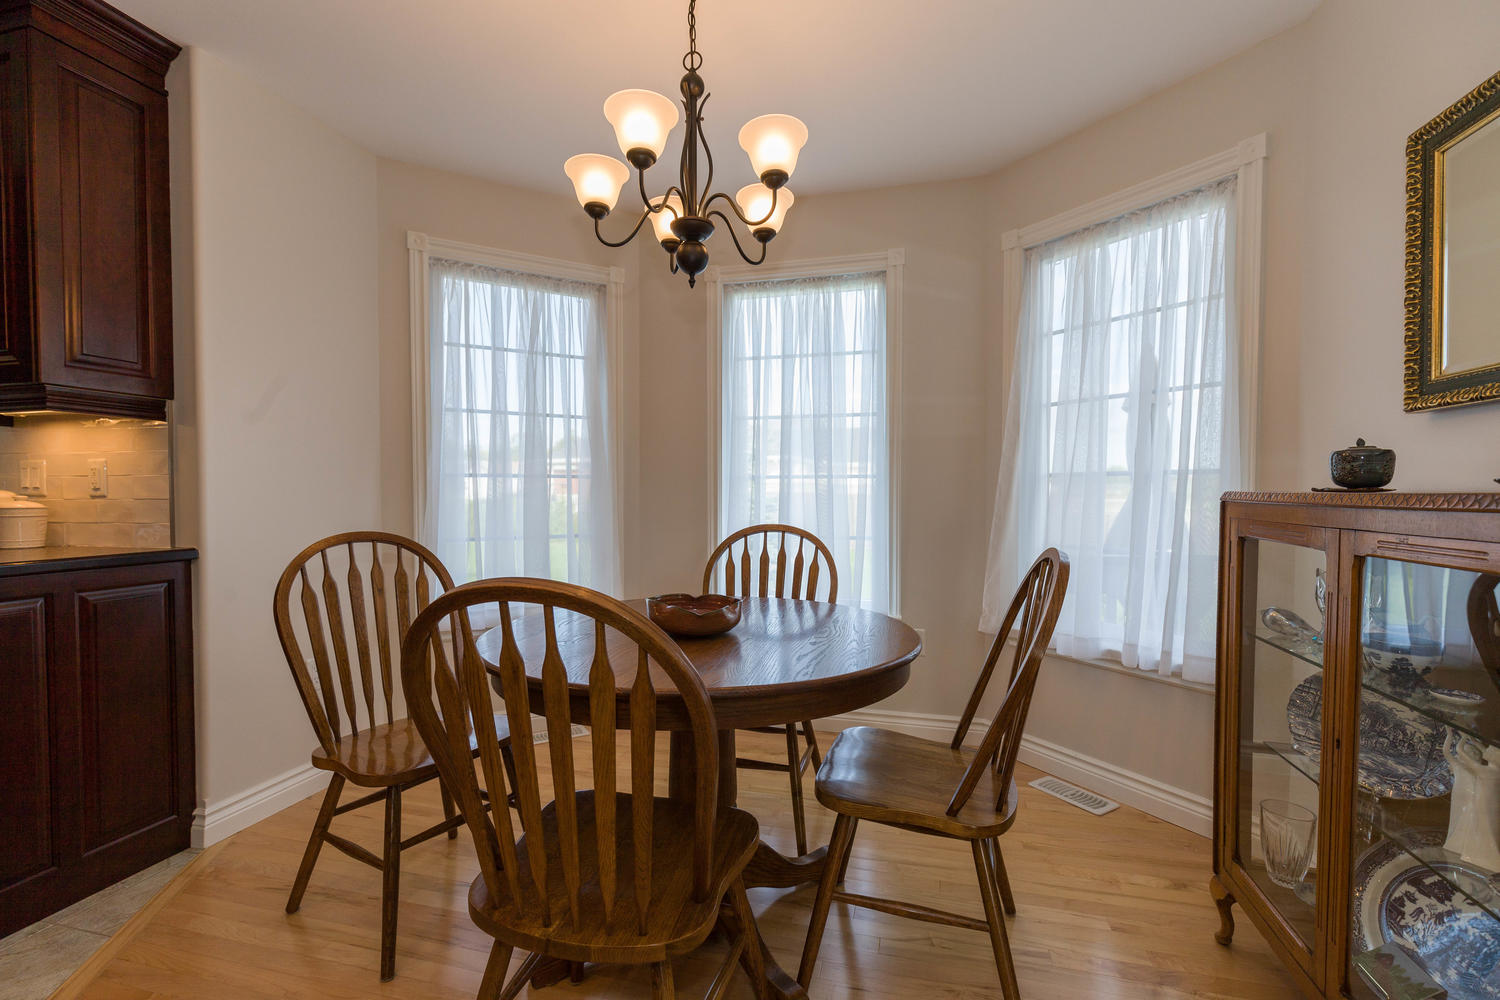 Very bright dining space with almost floor to ceiling windows just off the kitchen and overlooking the back yard.  From the morning coffee to the night cap, you'll enjoy sitting here for it all.